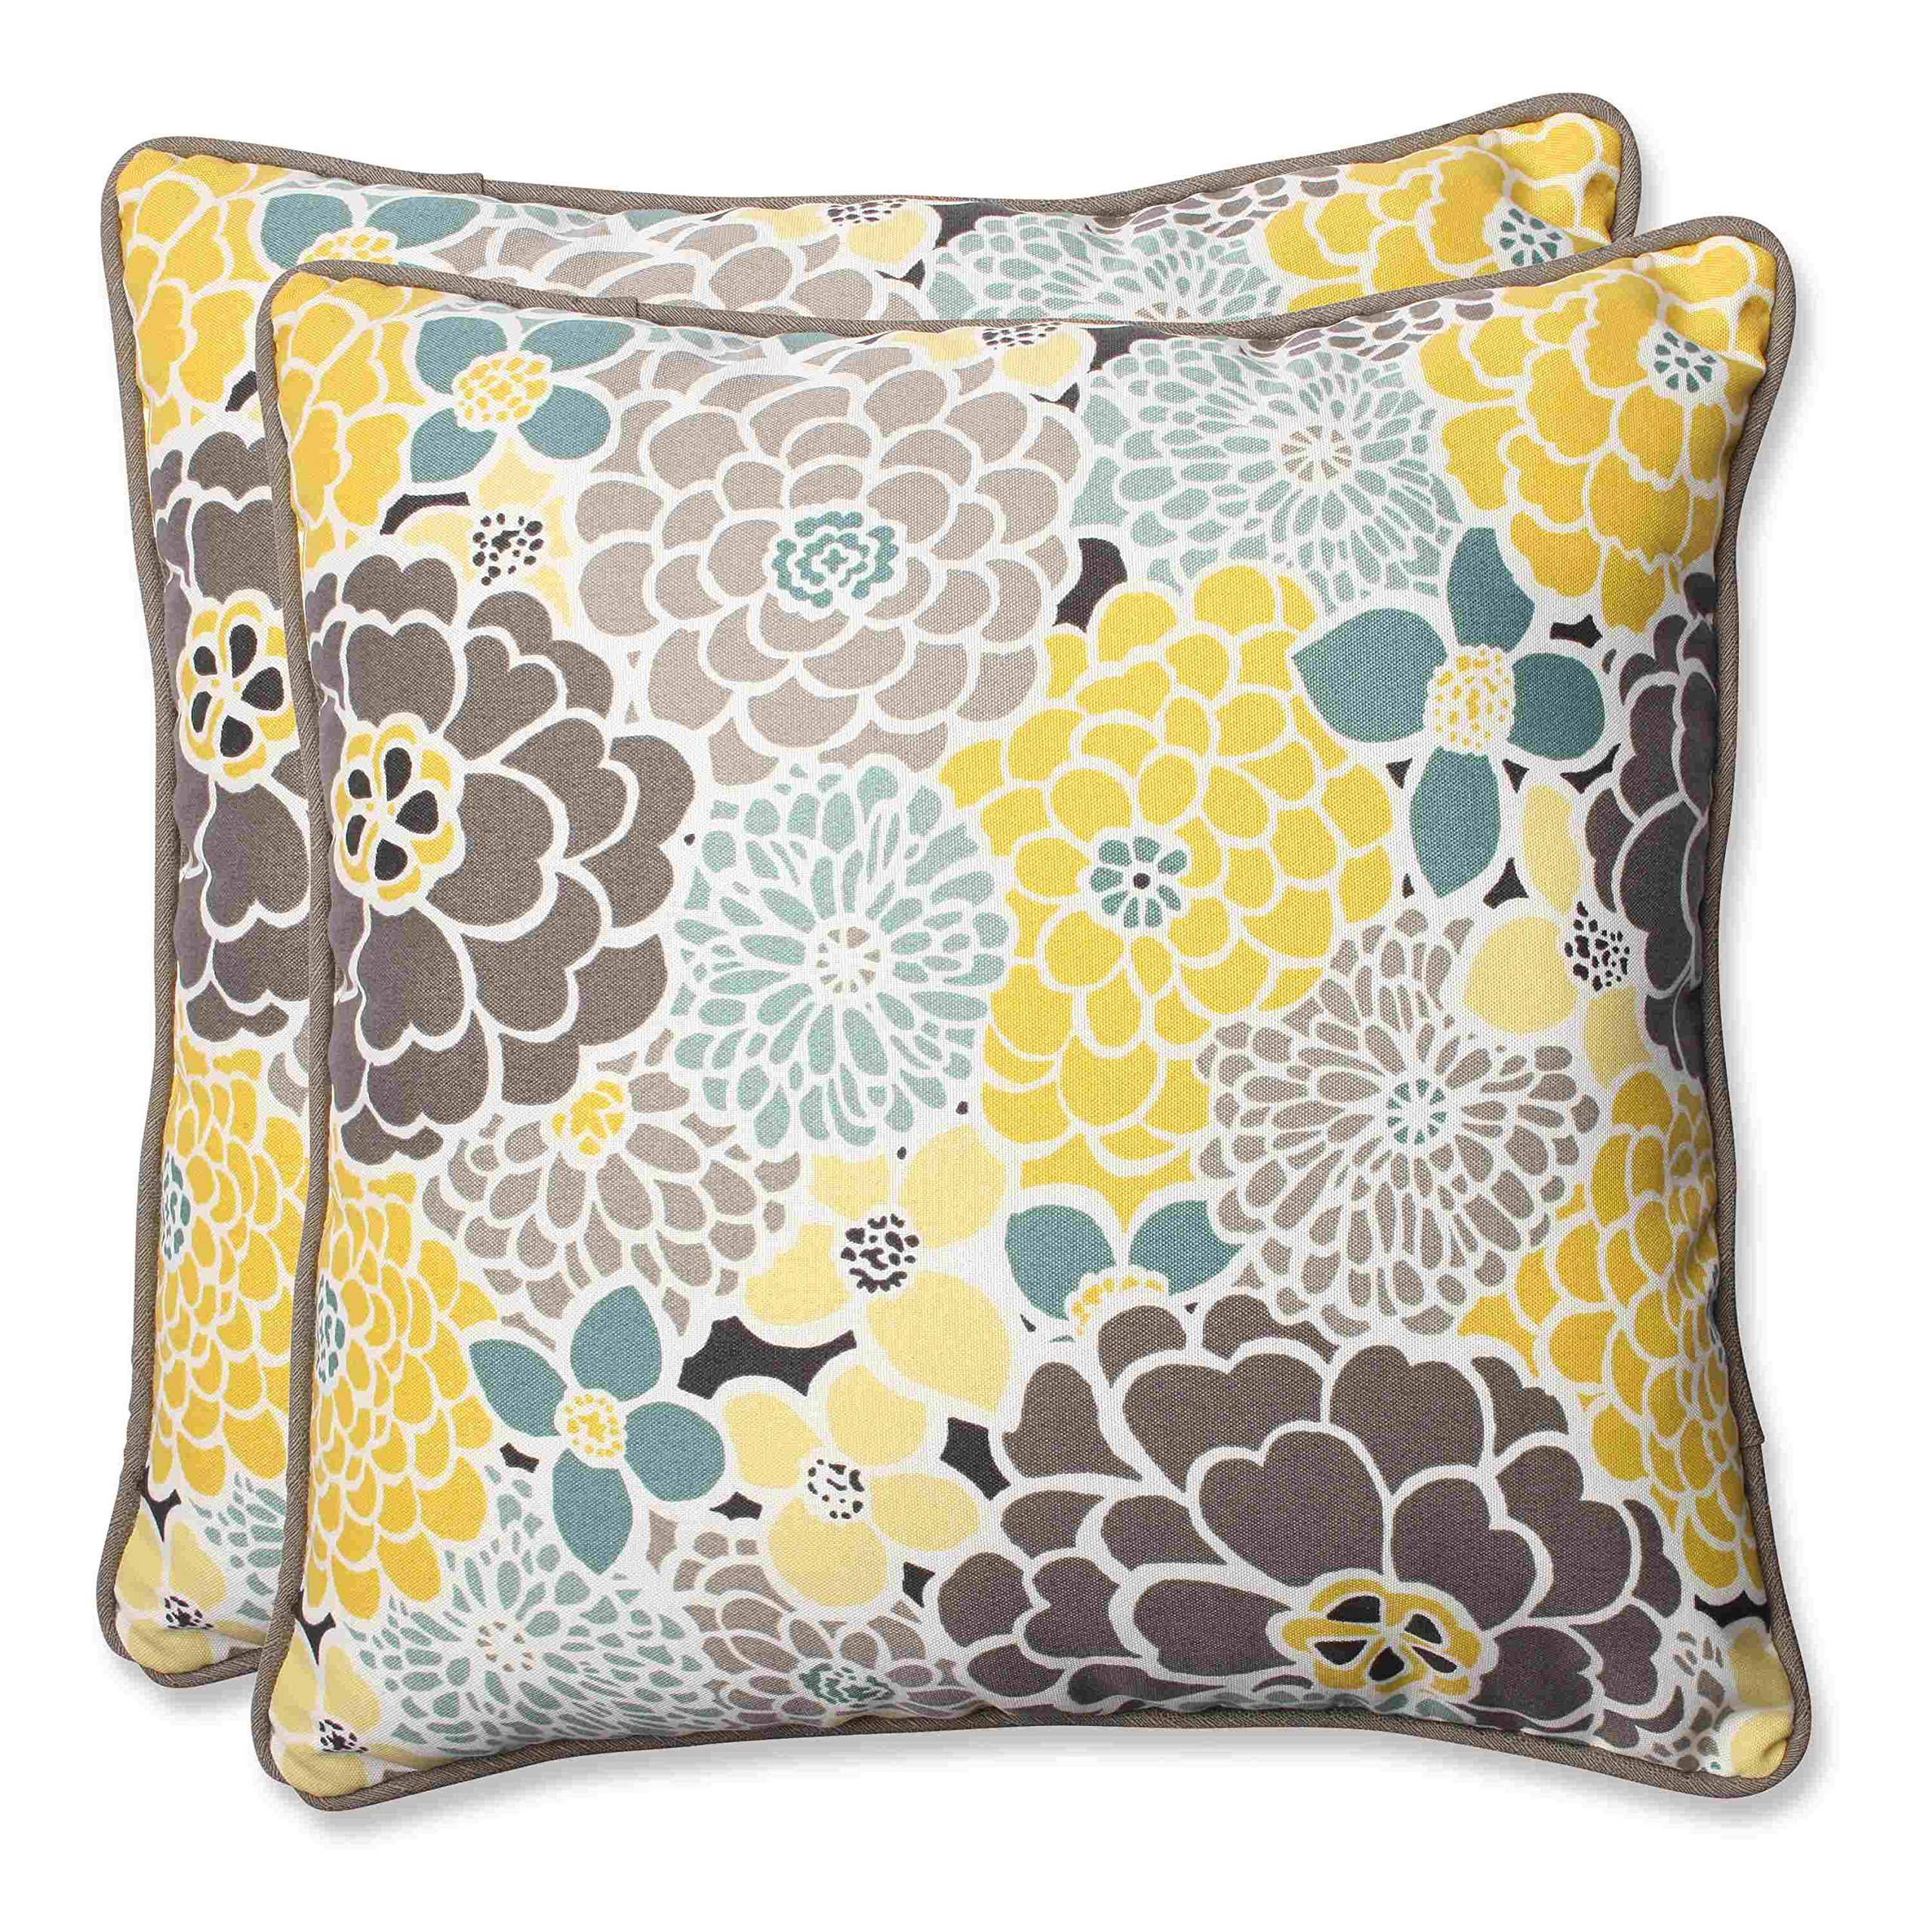 Pillow Perfect Outdoor Full Bloom Throw Pillow, 18.5-Inch, Set of 2